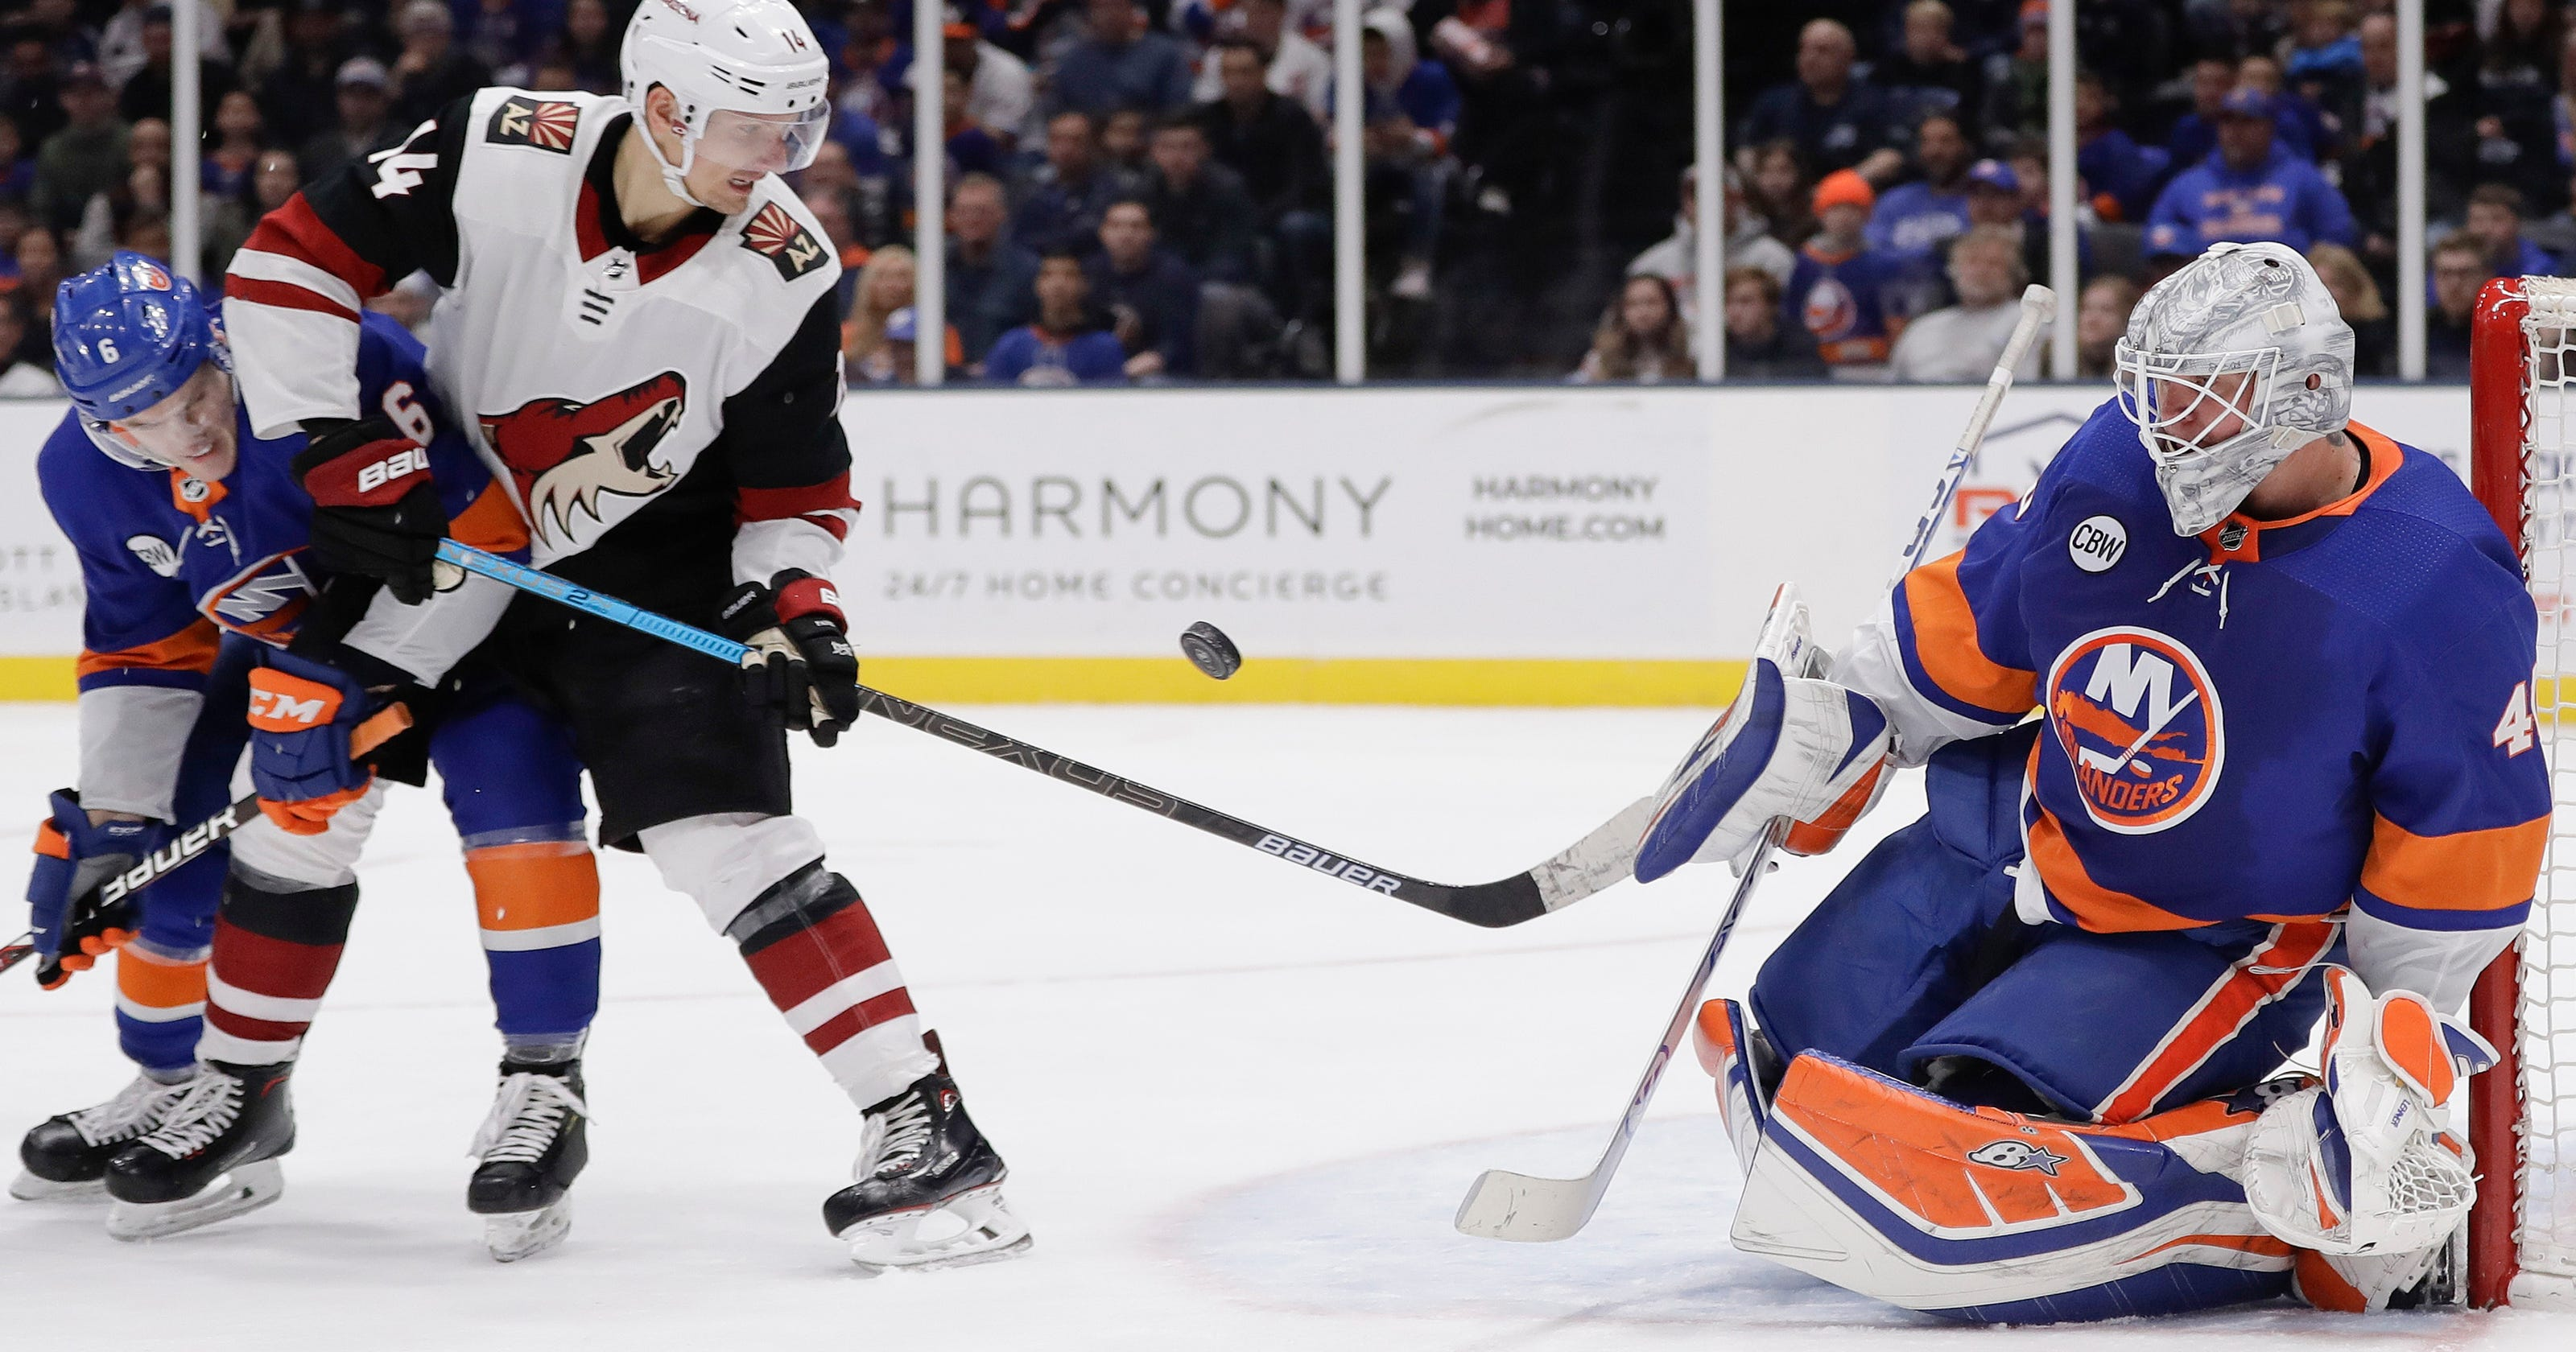 Lehner earns 5th shutout, Islanders beat Coyotes 2-0